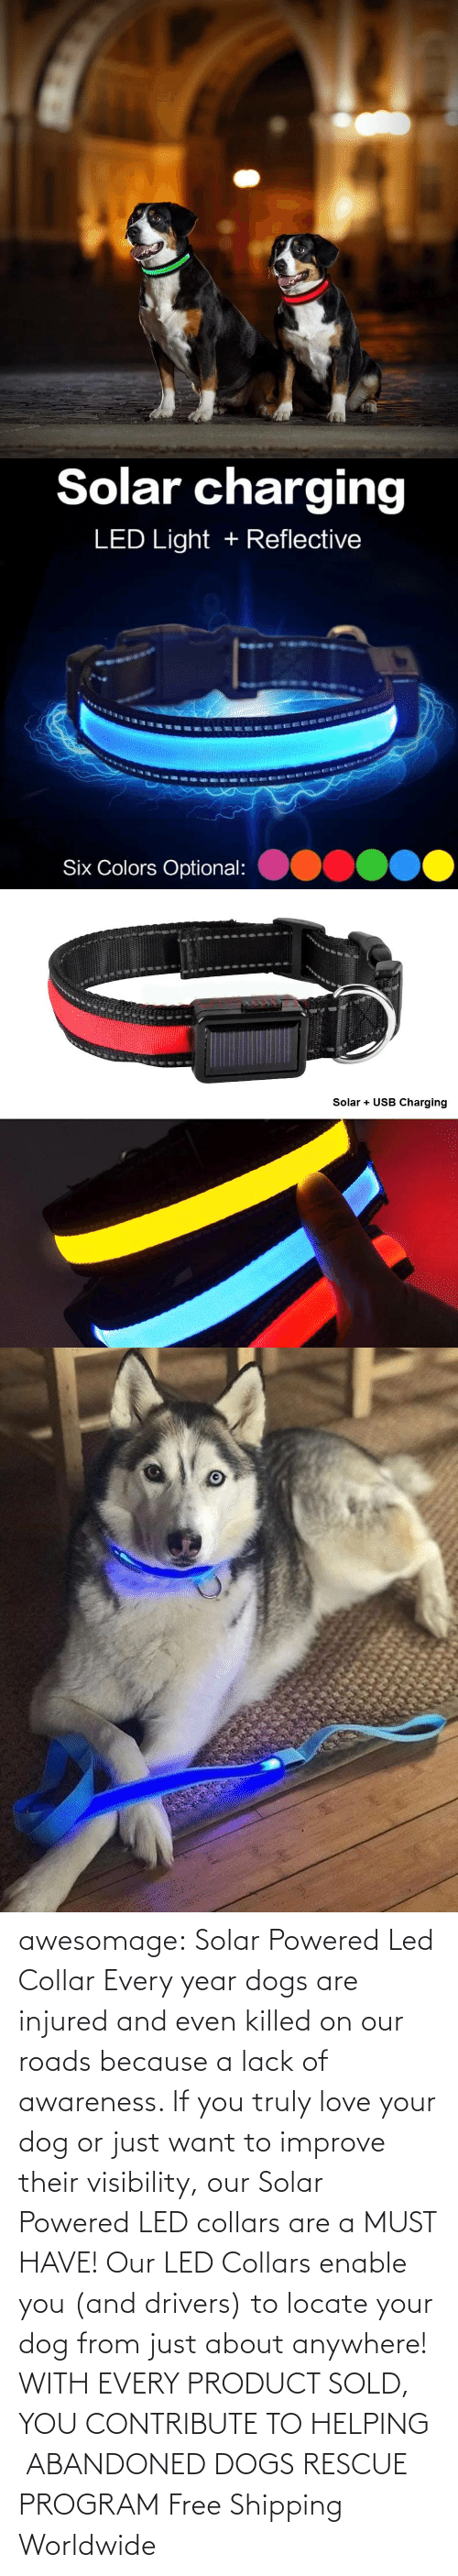 Roads: awesomage: Solar Powered Led Collar   Every year dogs are injured and even killed on our roads because a lack of awareness. If you truly love your dog or just want to improve their visibility, our Solar Powered LED collars are a MUST HAVE!   Our LED Collars enable you (and drivers) to locate your dog from just about anywhere!     WITH EVERY PRODUCT SOLD, YOU CONTRIBUTE TO HELPING  ABANDONED DOGS RESCUE PROGRAM     Free Shipping Worldwide